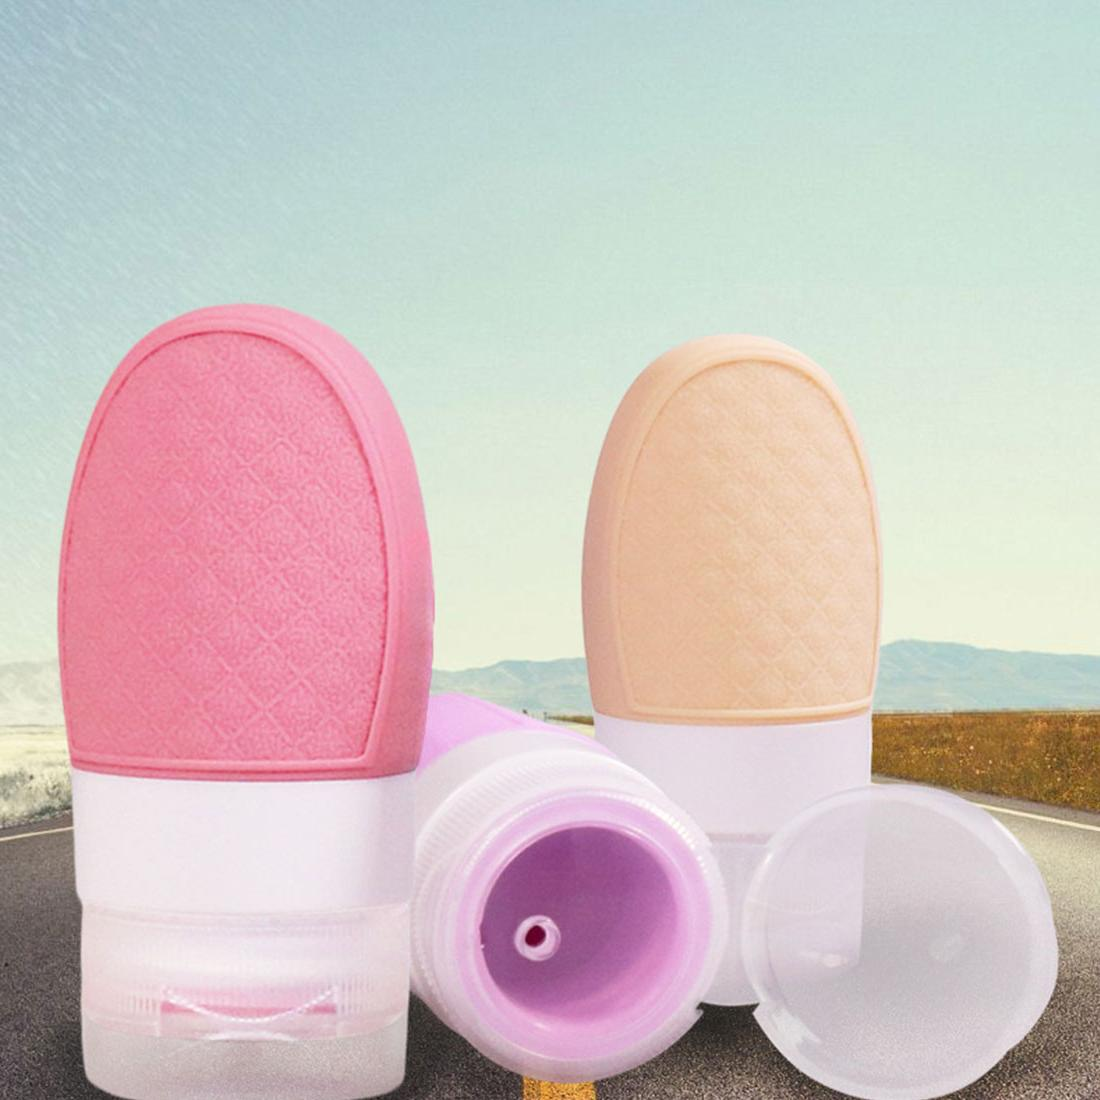 Travel portable silicone sub-bottle cosmetic <font><b>soap</b></font> lotion bottle